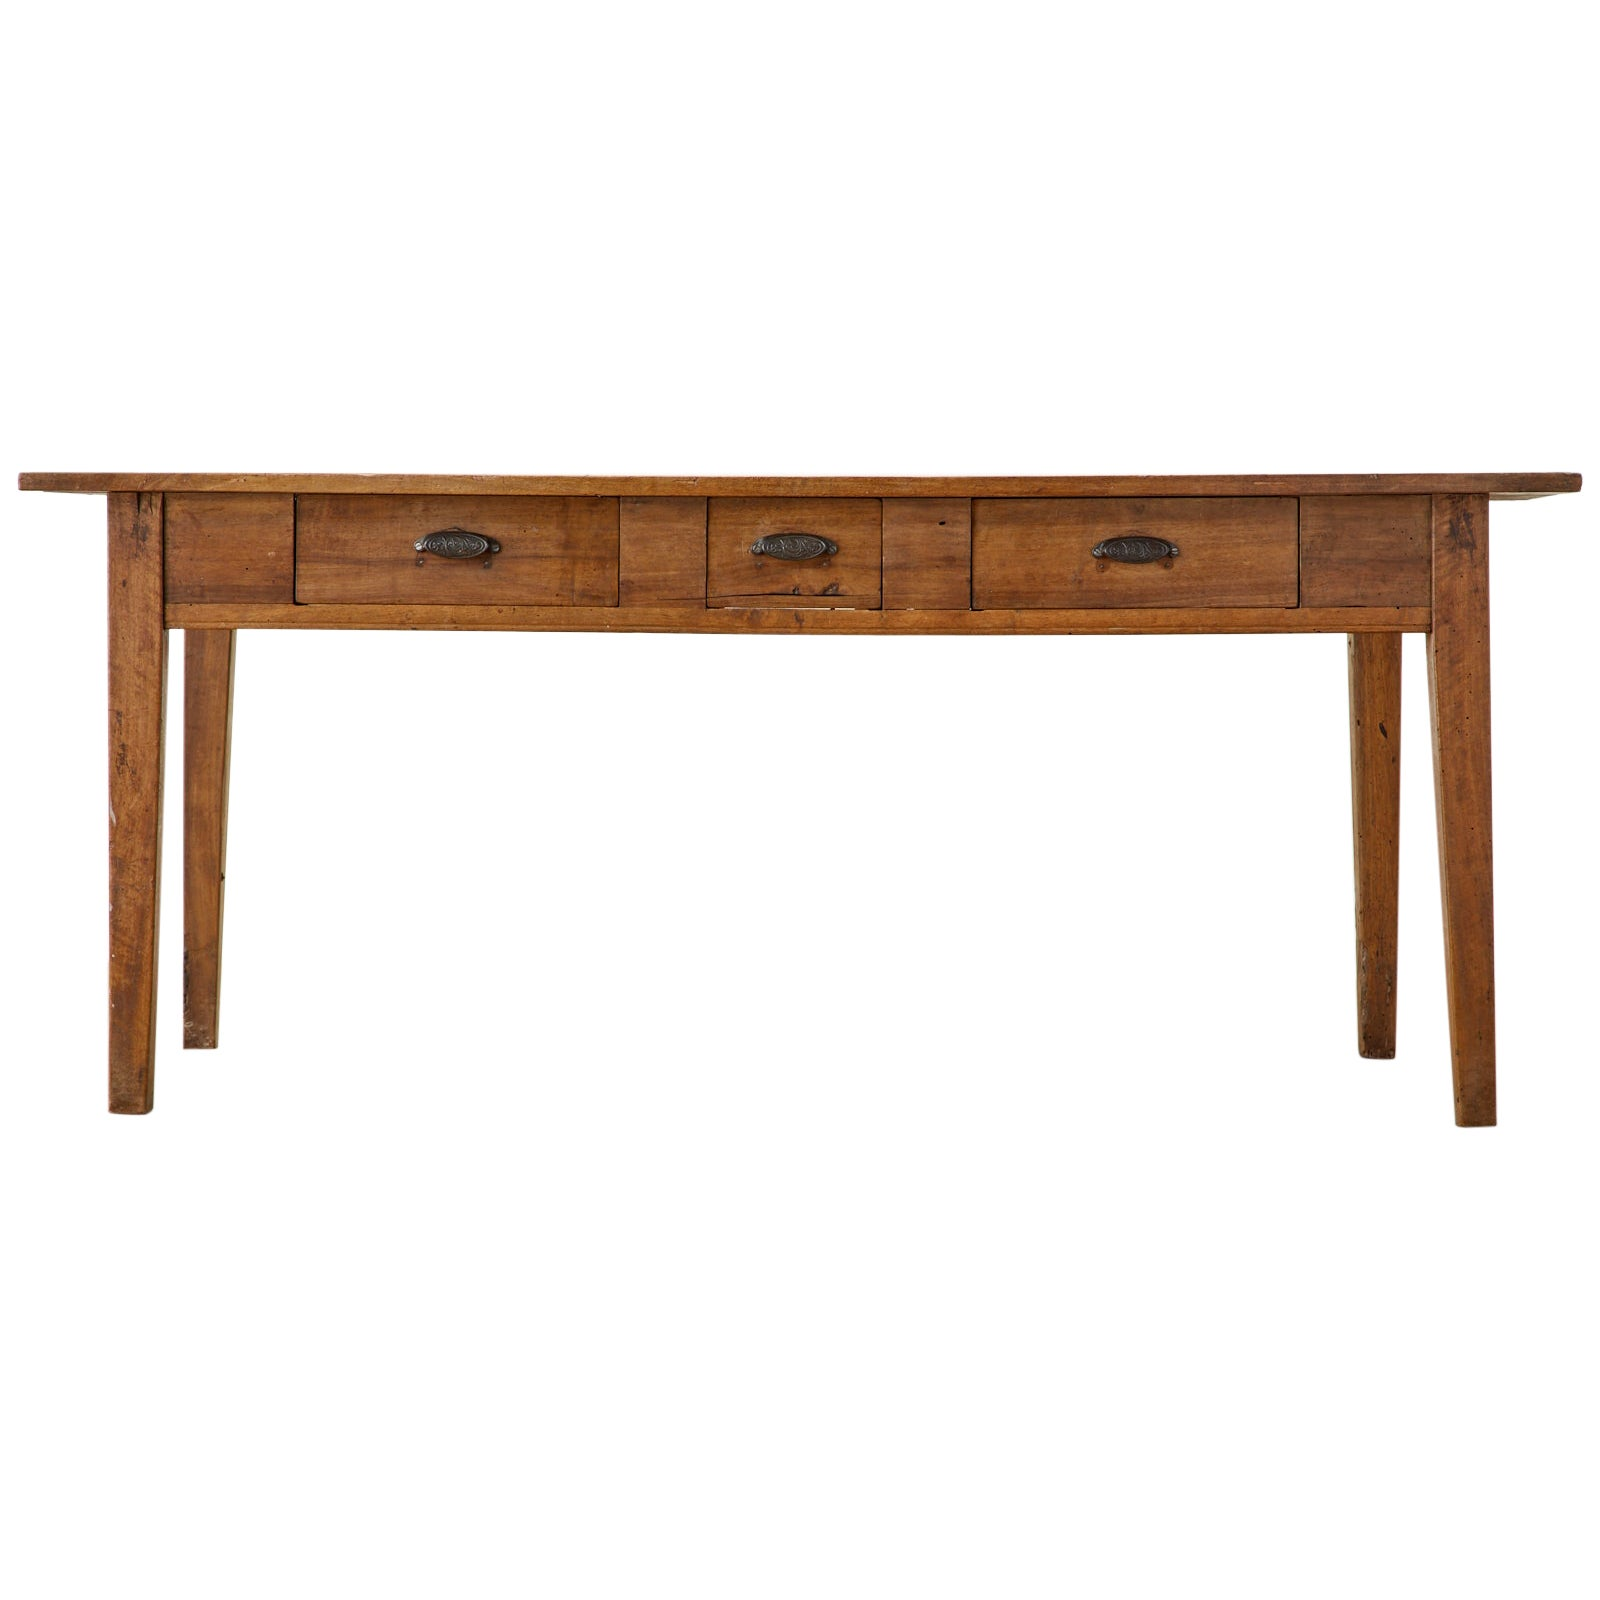 19th Century French Provincial Farmhouse Fruitwood Dining Table